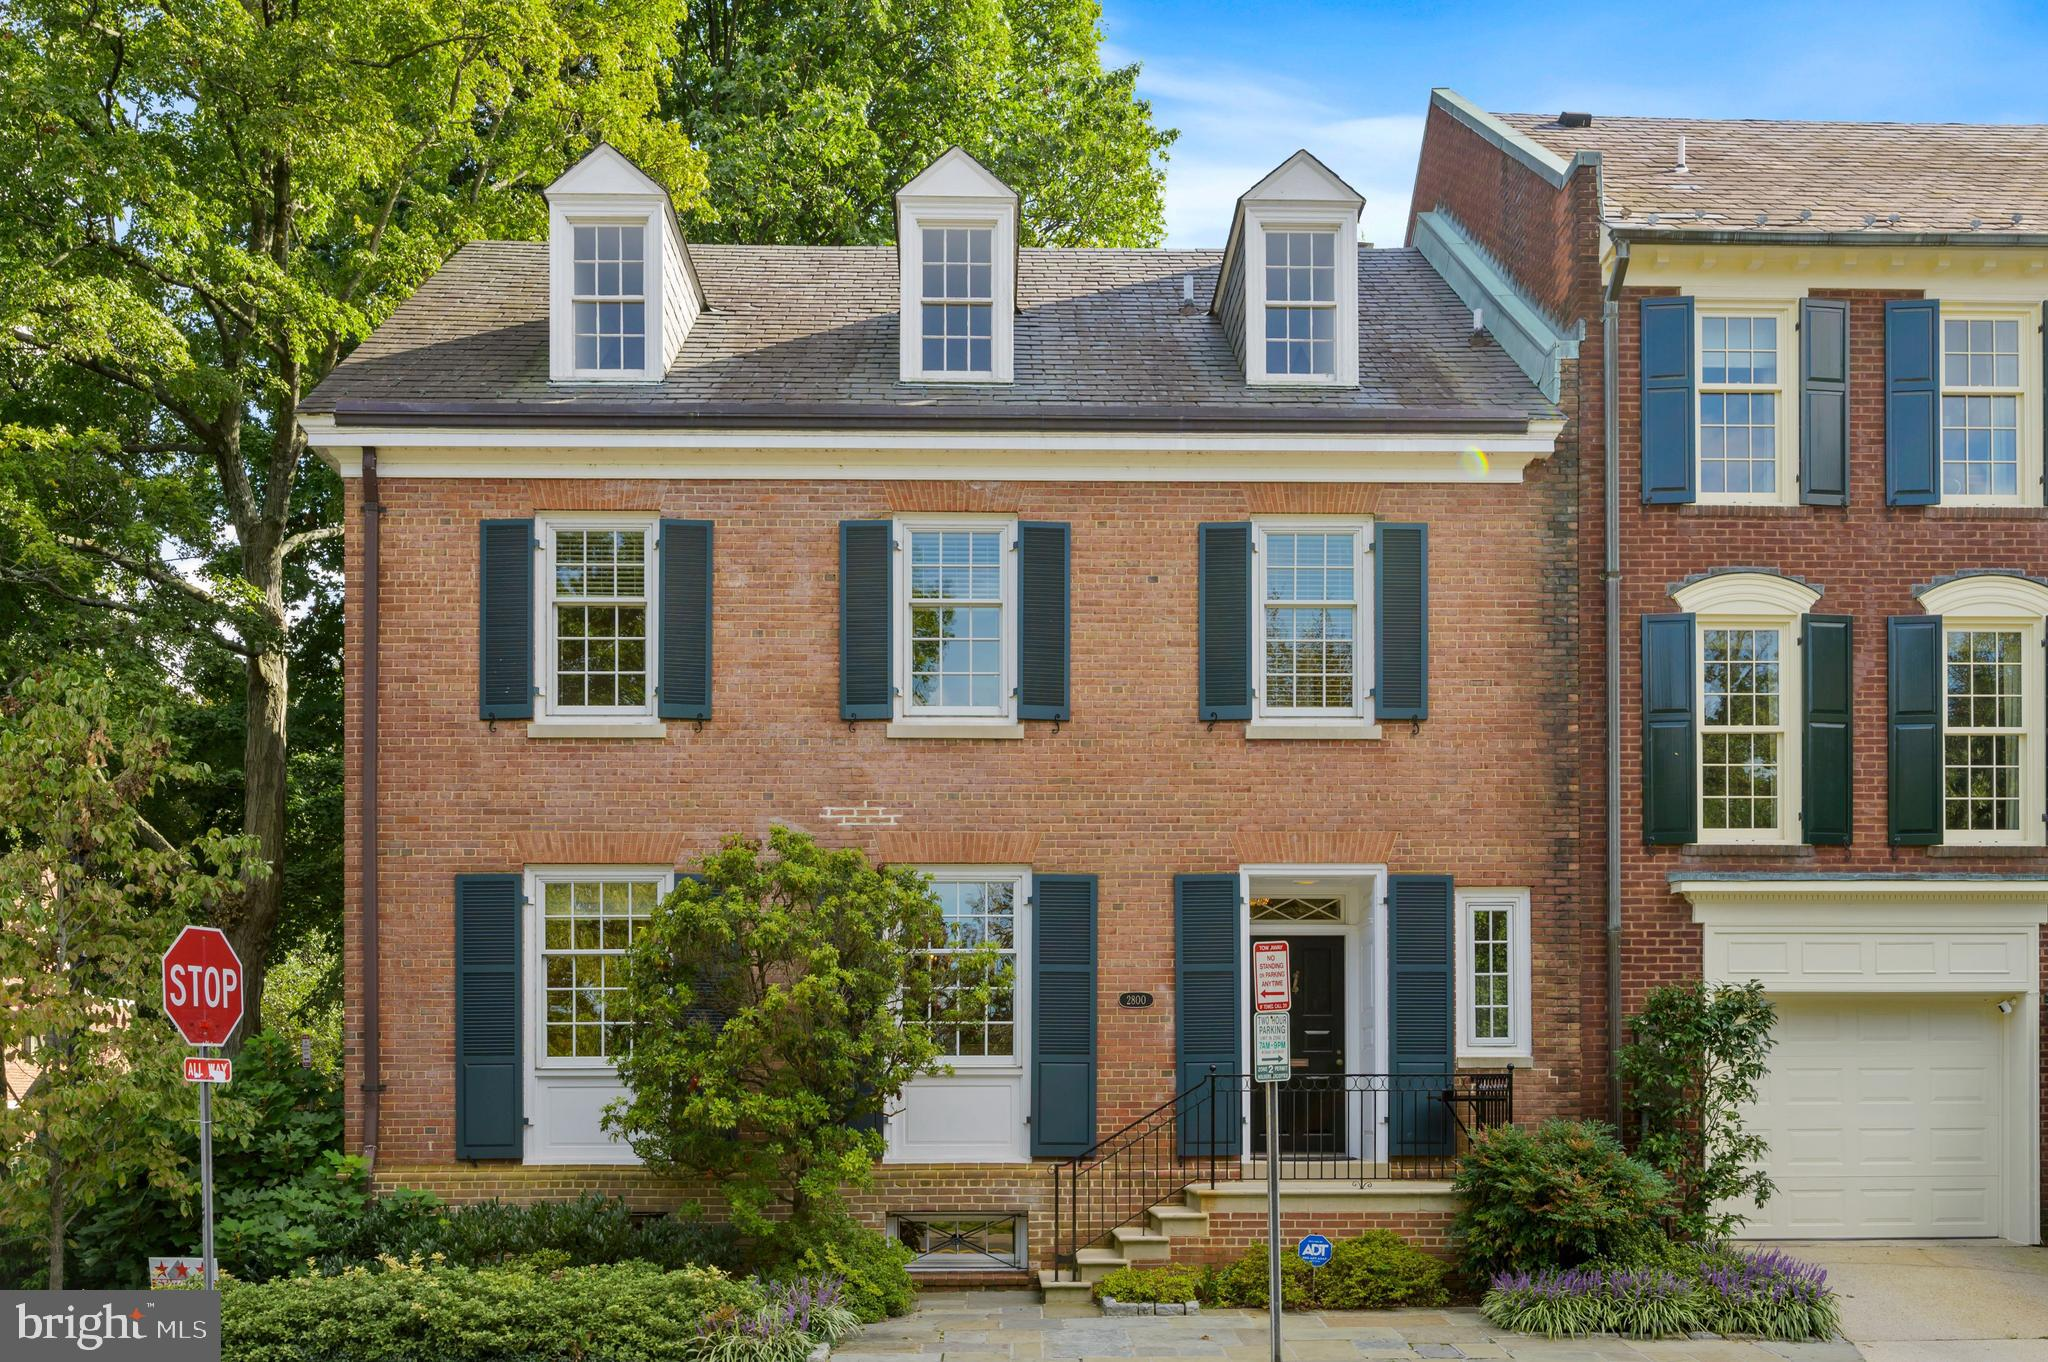 Stunning 5BR/3.5BA home in the East Village w/ spacious, light-filled bedrooms and updated bathrooms